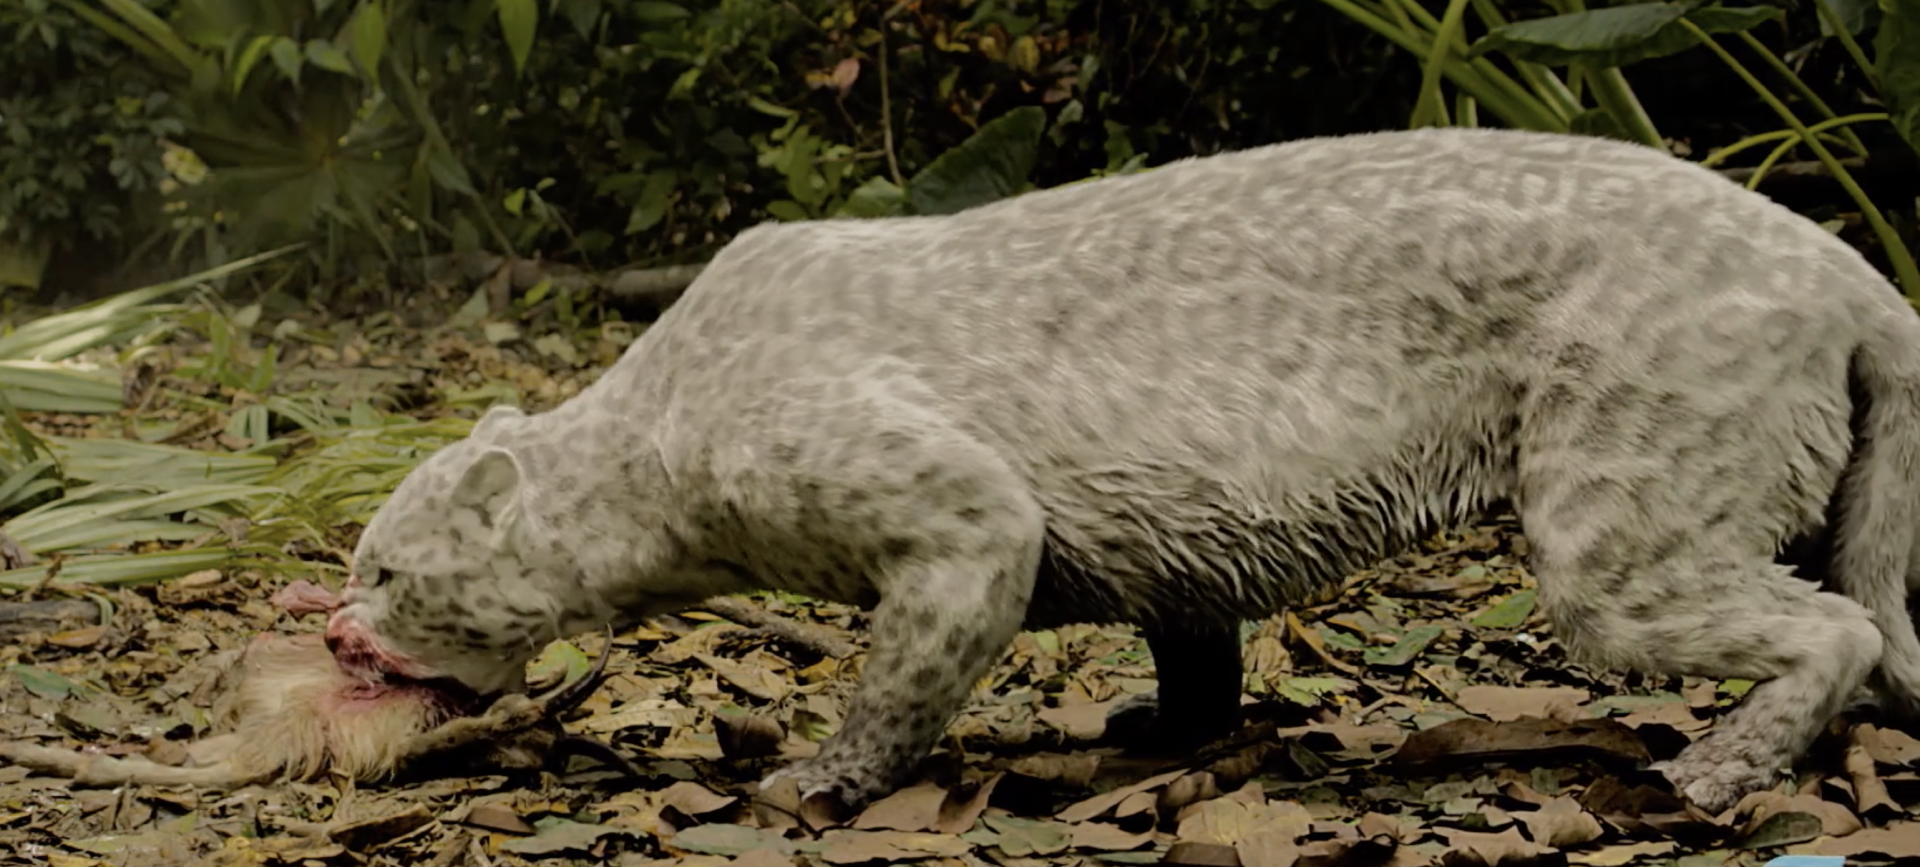 Deadly Animals Stalk Nicolas Cage with Help from Ziva VFX